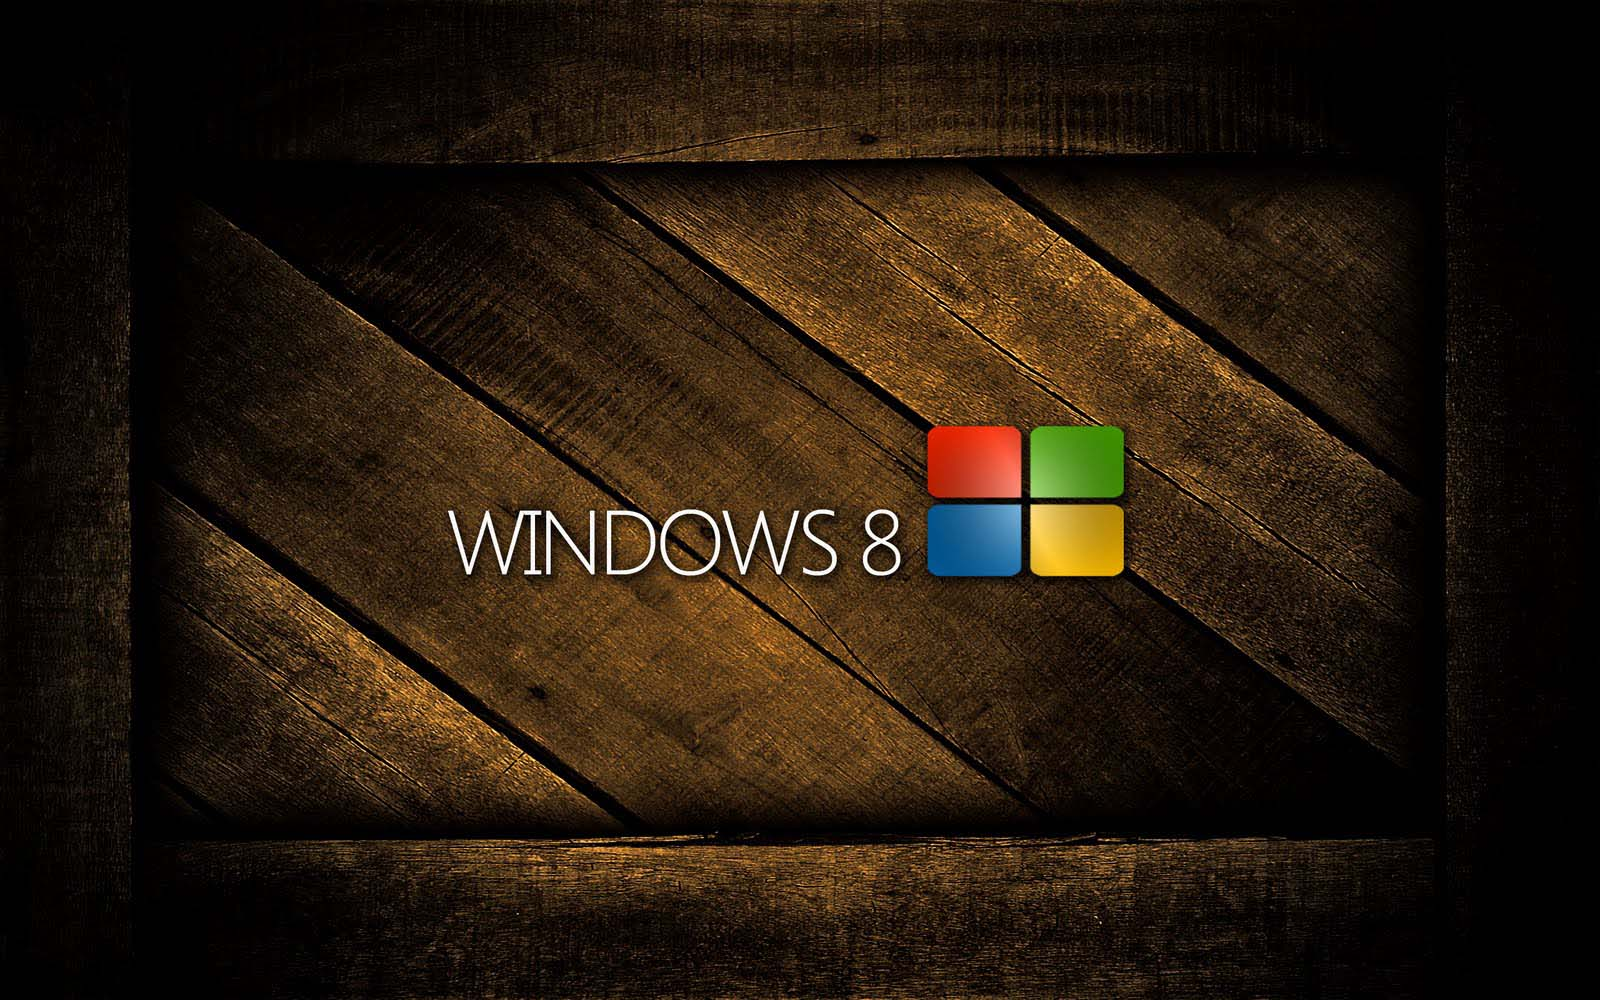 Windows 8 Background Themes ~ HD Wallpapers